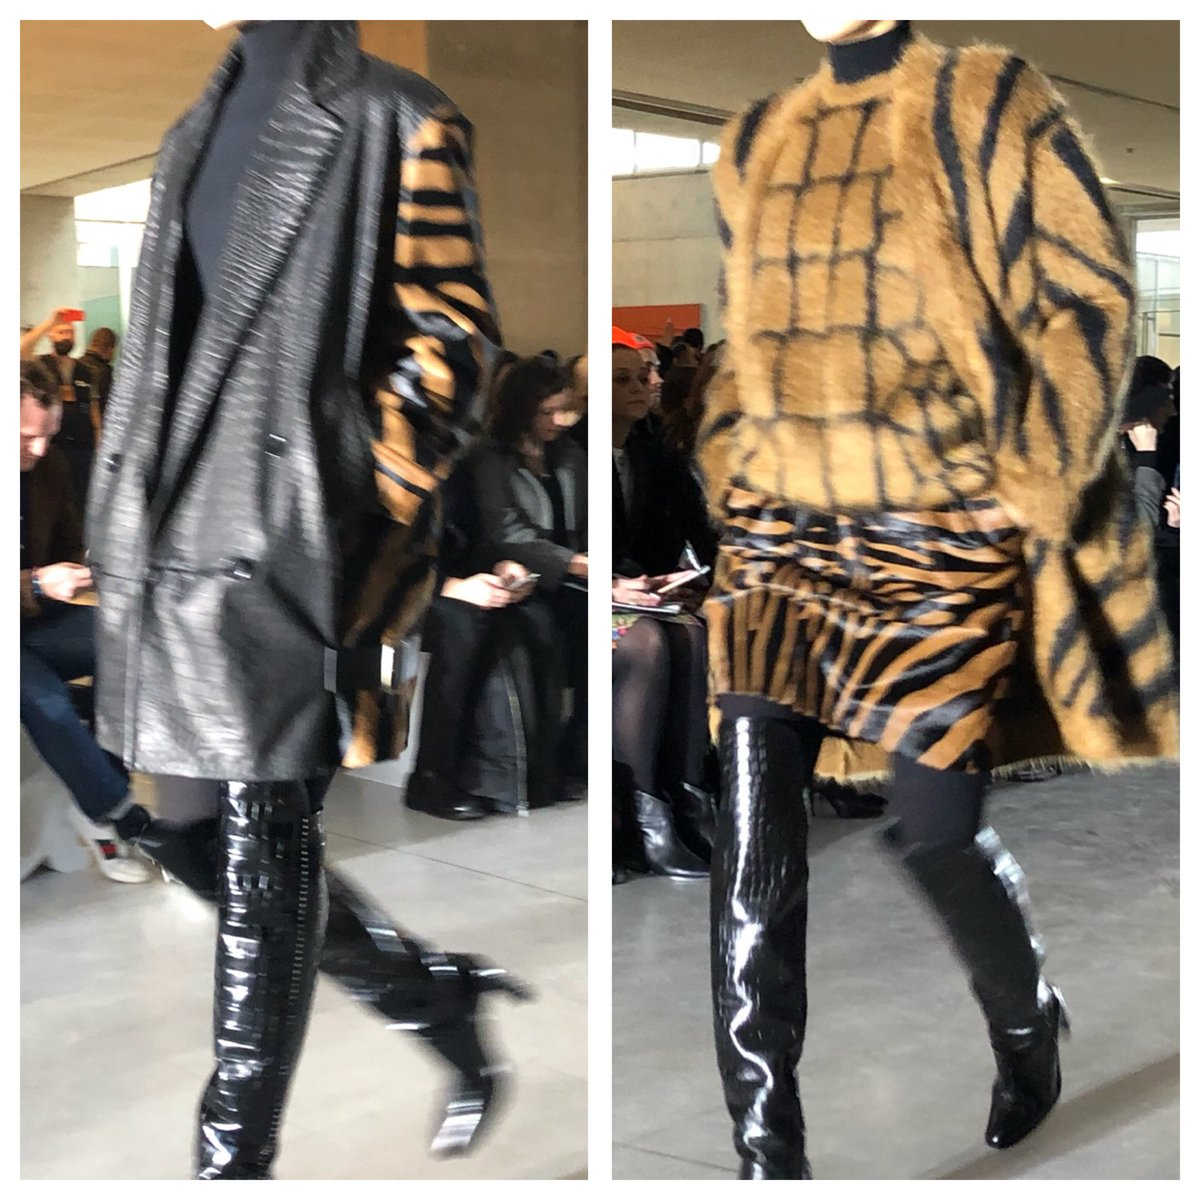 The menagerie of @maxmara: croc and tiger and zebra, oh my! #MFW